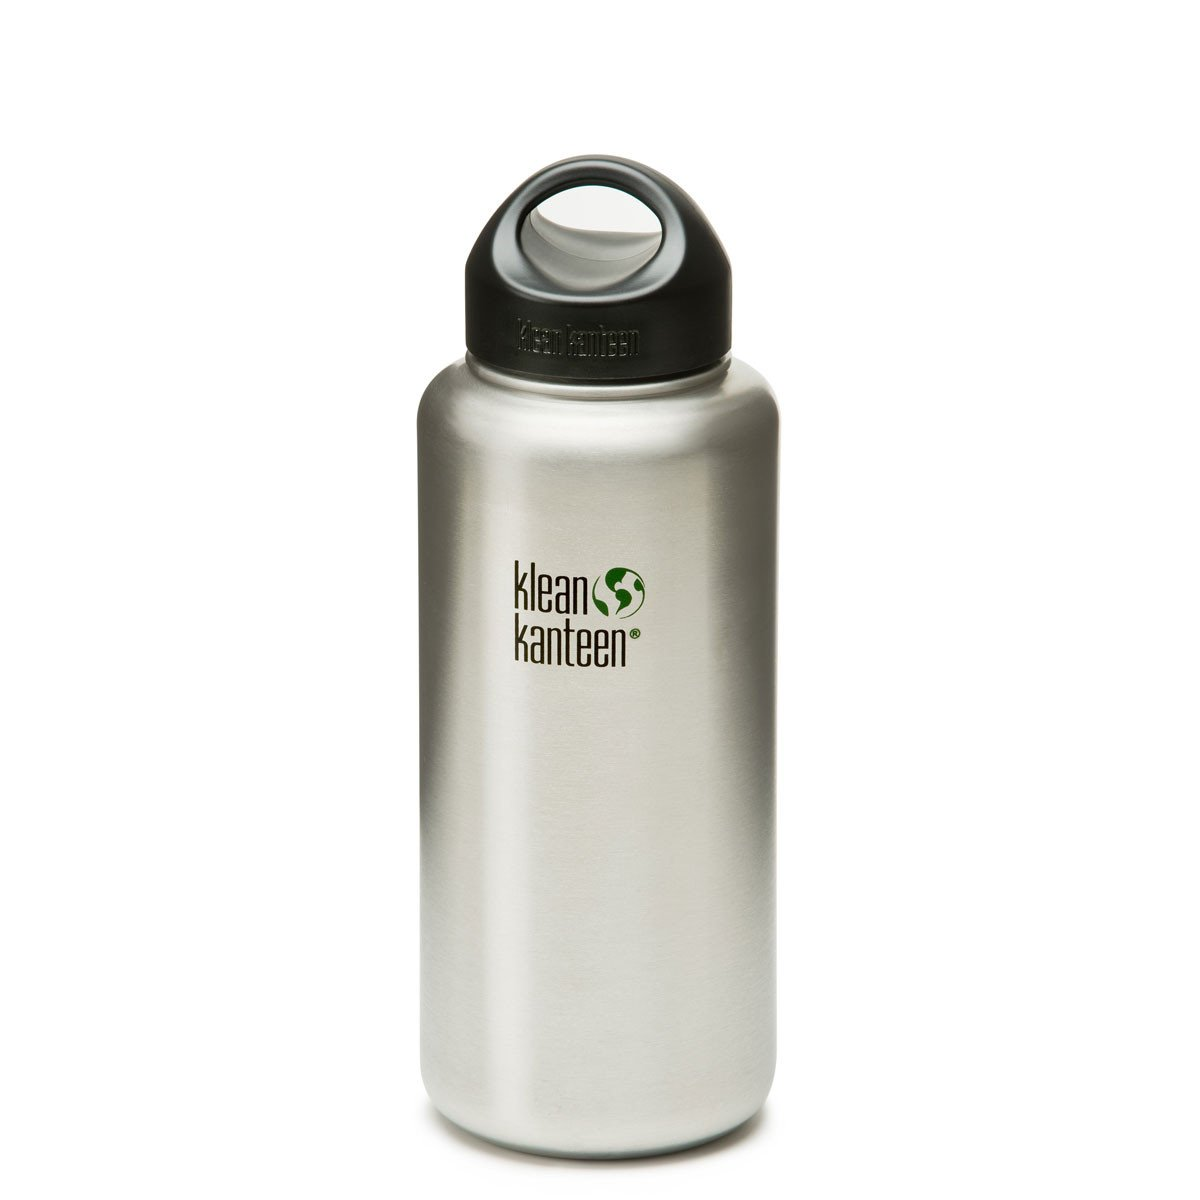 Klean Kanteen Stainless Steel Wide Mouth Bottle Klean Kanteen Water Bottles 1182ml 40oz at Little Earth Nest Eco Shop